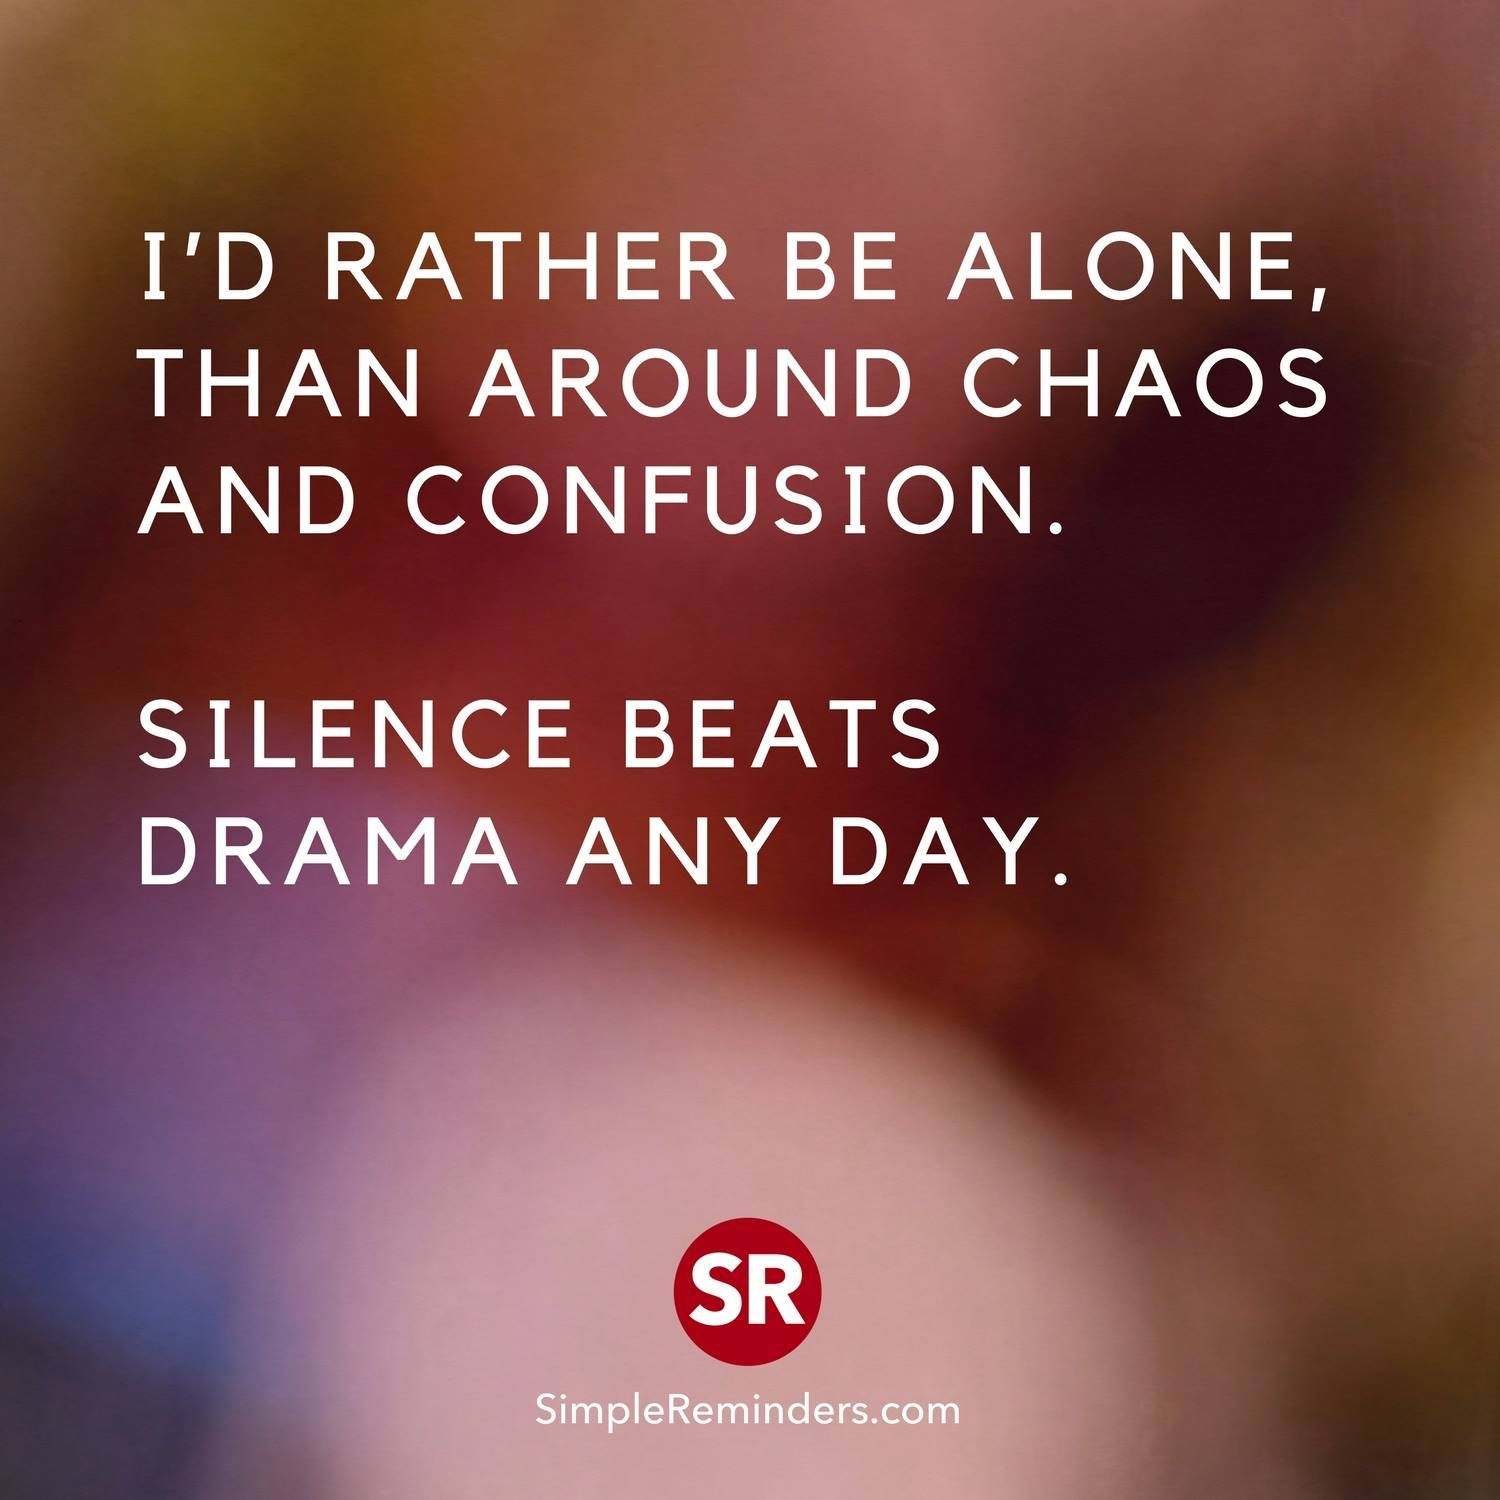 Id Rather Be Alone Than Around Chaos And Confusion Silence Beats